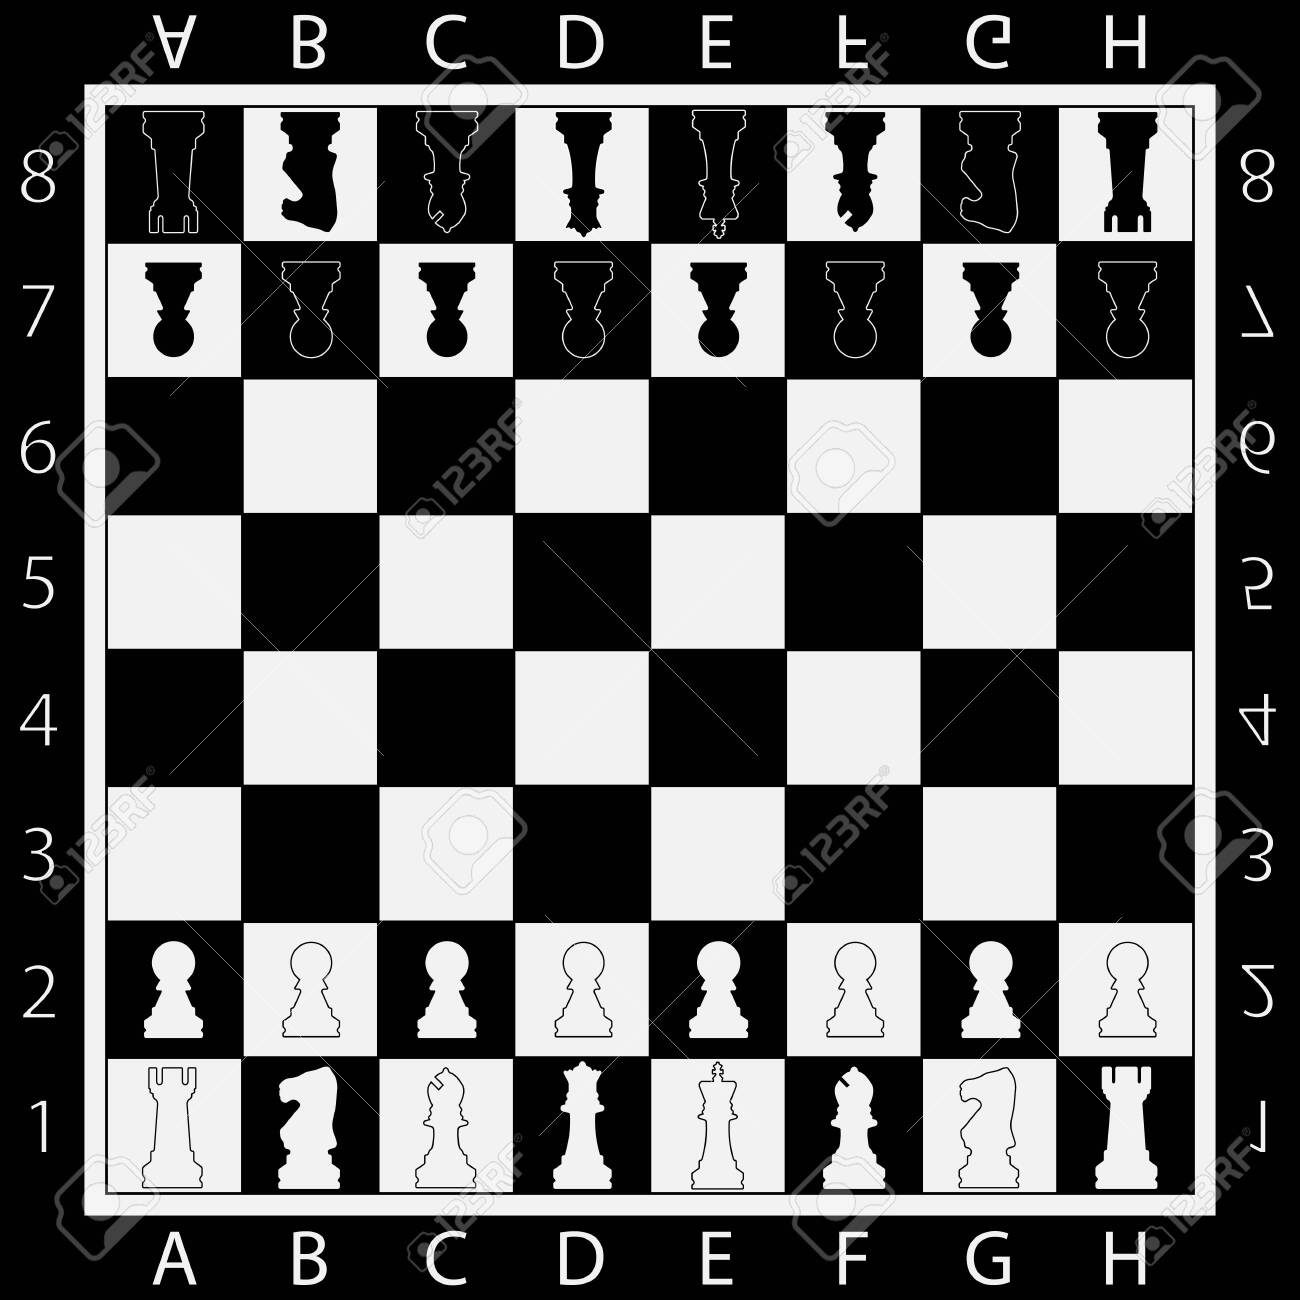 Chess Table online game app concept, strategy game Vector - 129549849